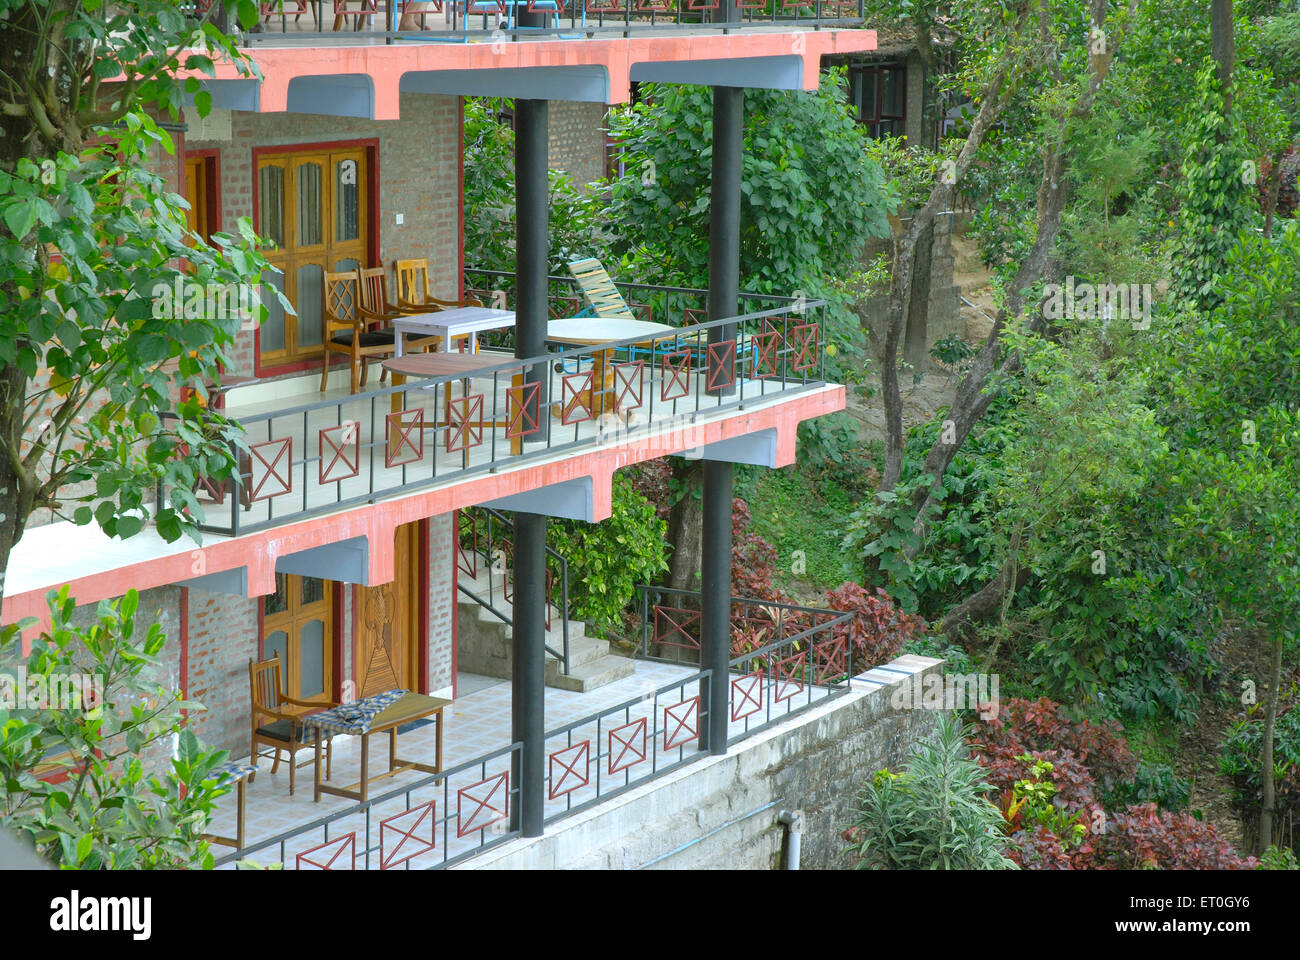 Two balconies of tourist resort with tables and chairs at Madikeri Madikery ; District Coorg ; Karnataka ; India - Stock Image